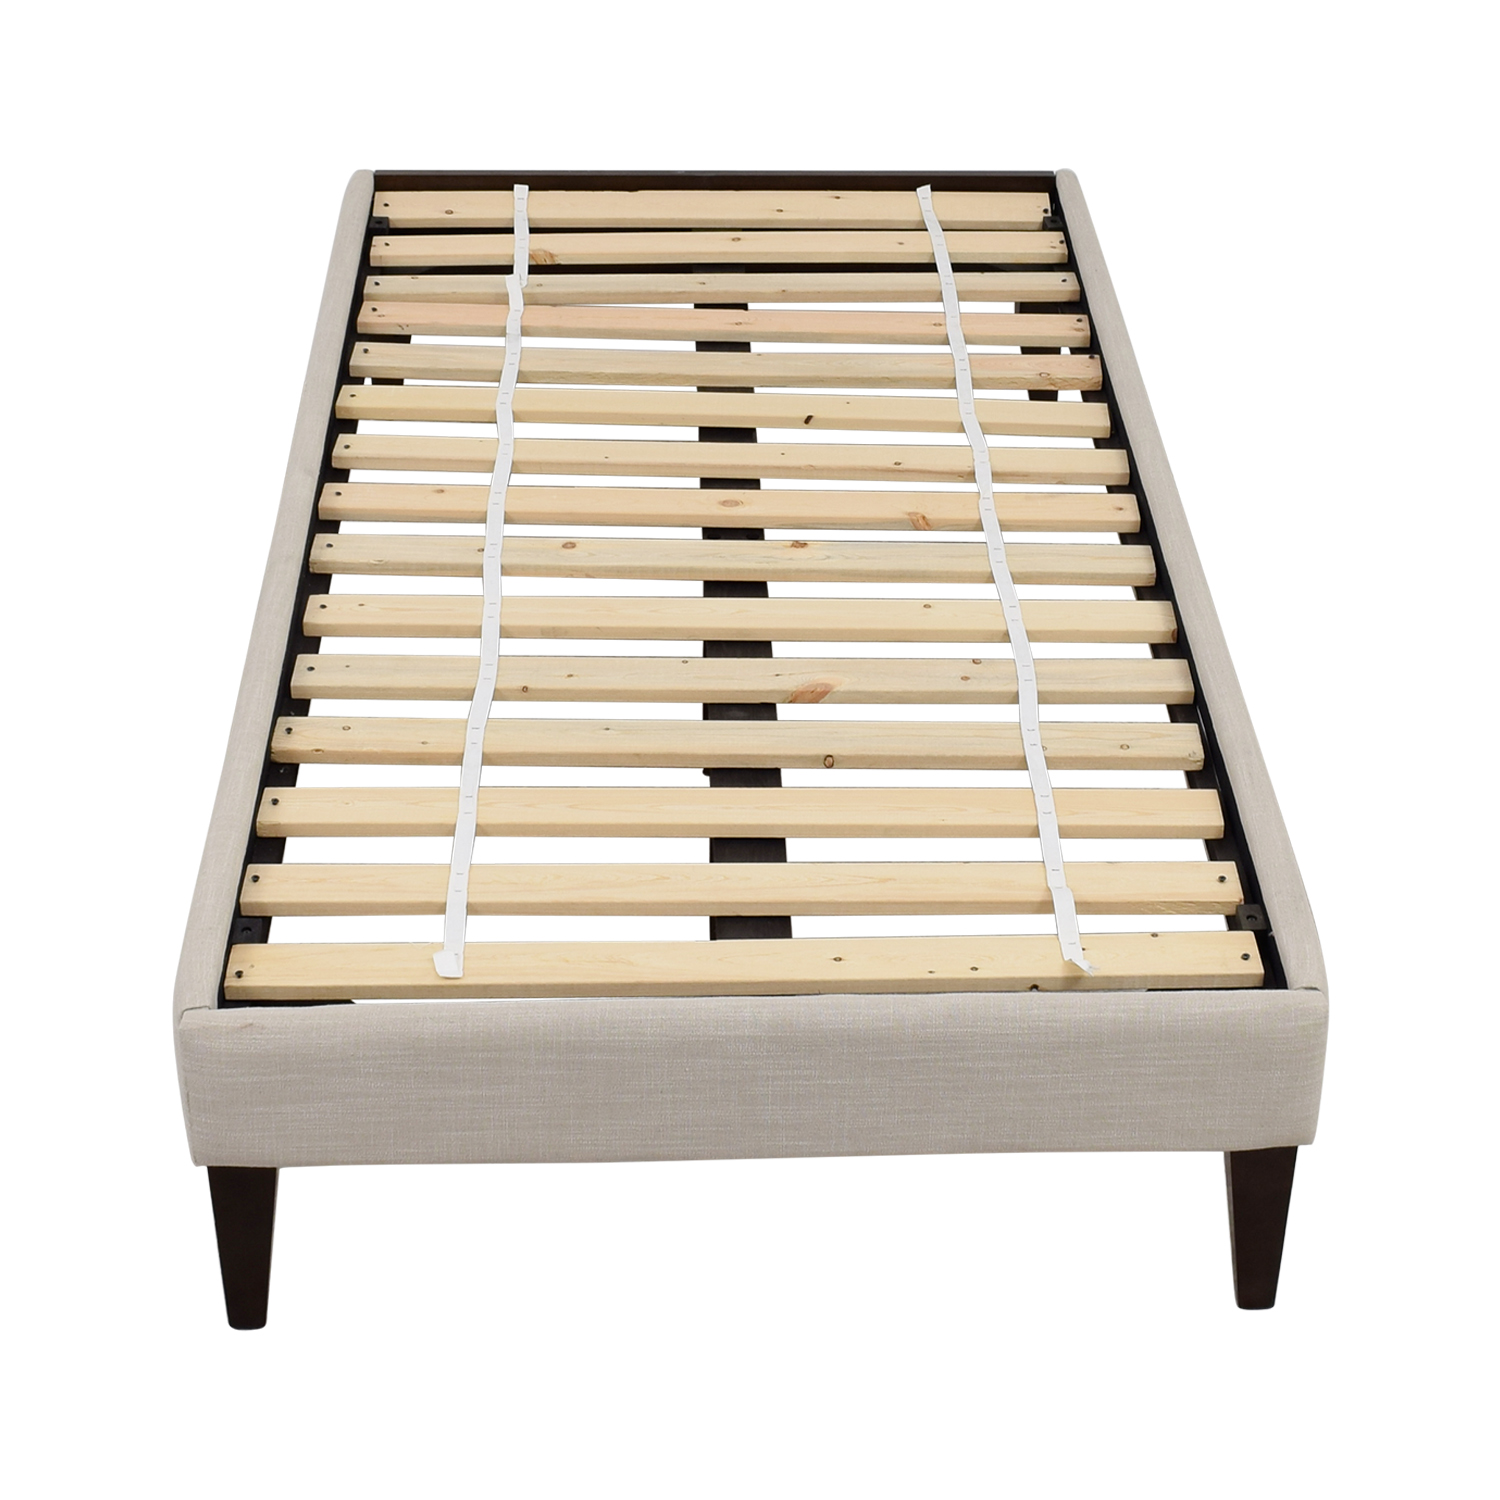 42% OFF - West Elm West Elm Narrow Leg Upholstered Twin Bed Frame / Beds